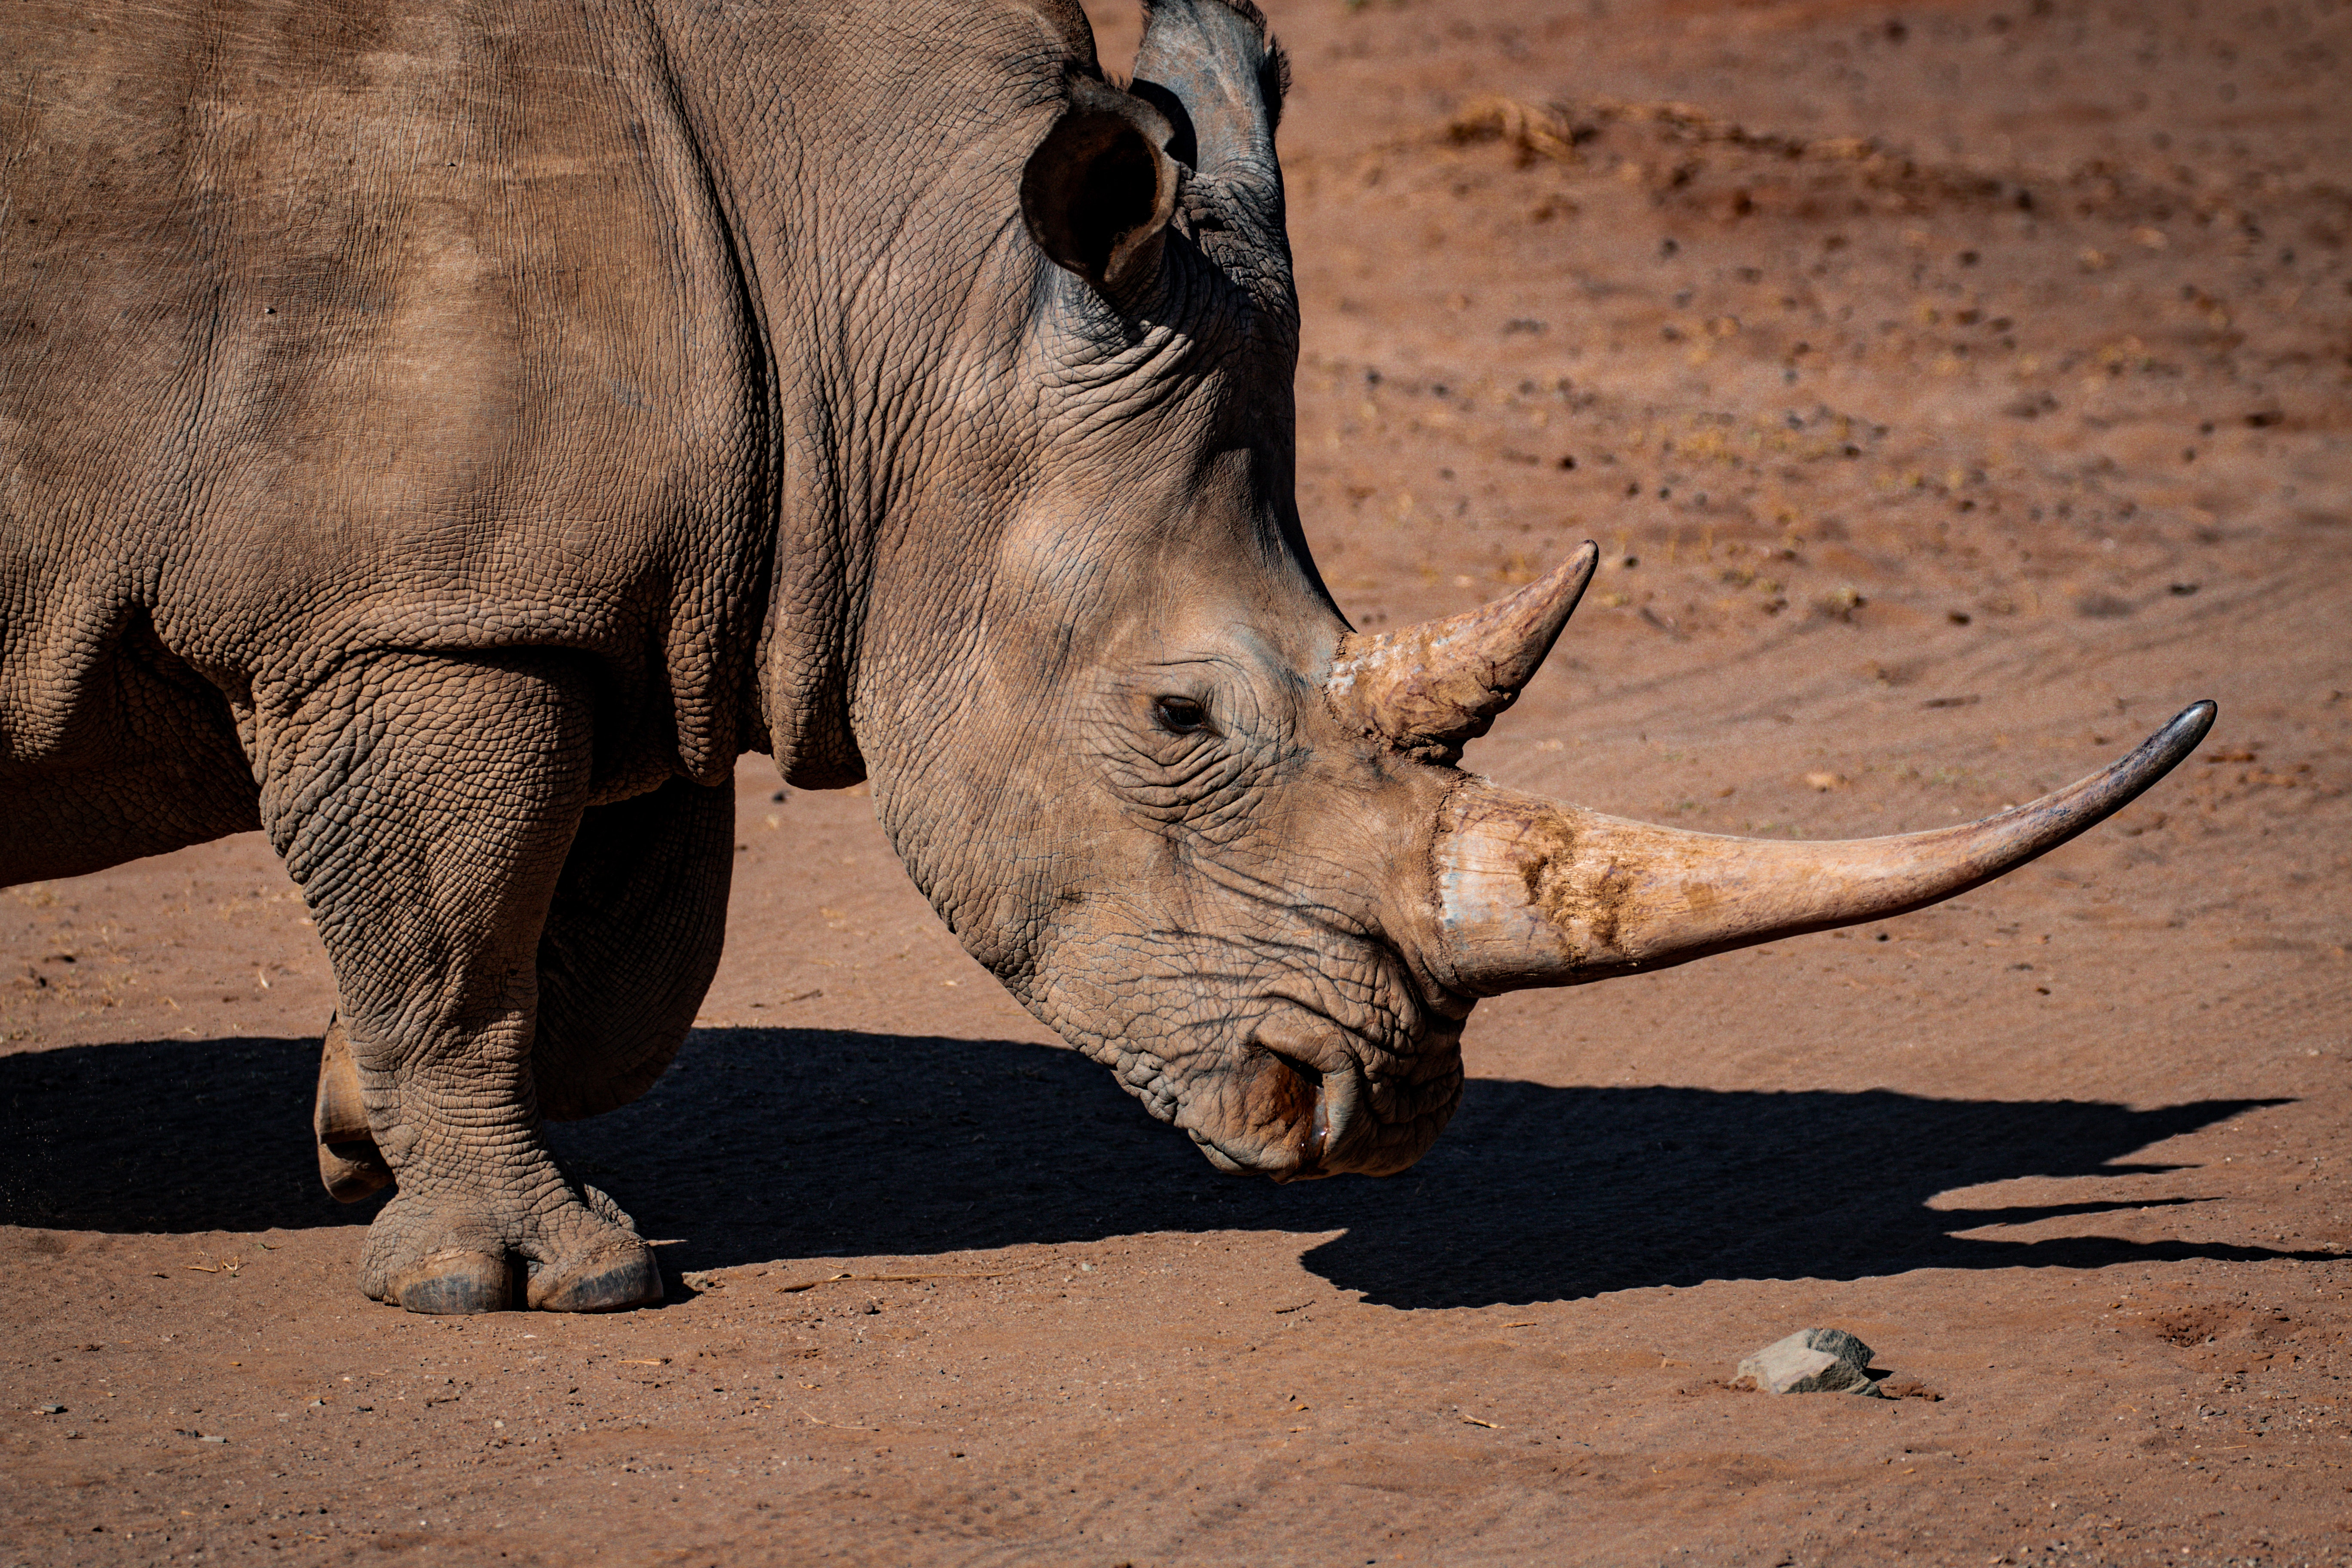 VIDEO: Angry Rhino Goes Ballistic And Flips Car With Zookeeper Inside